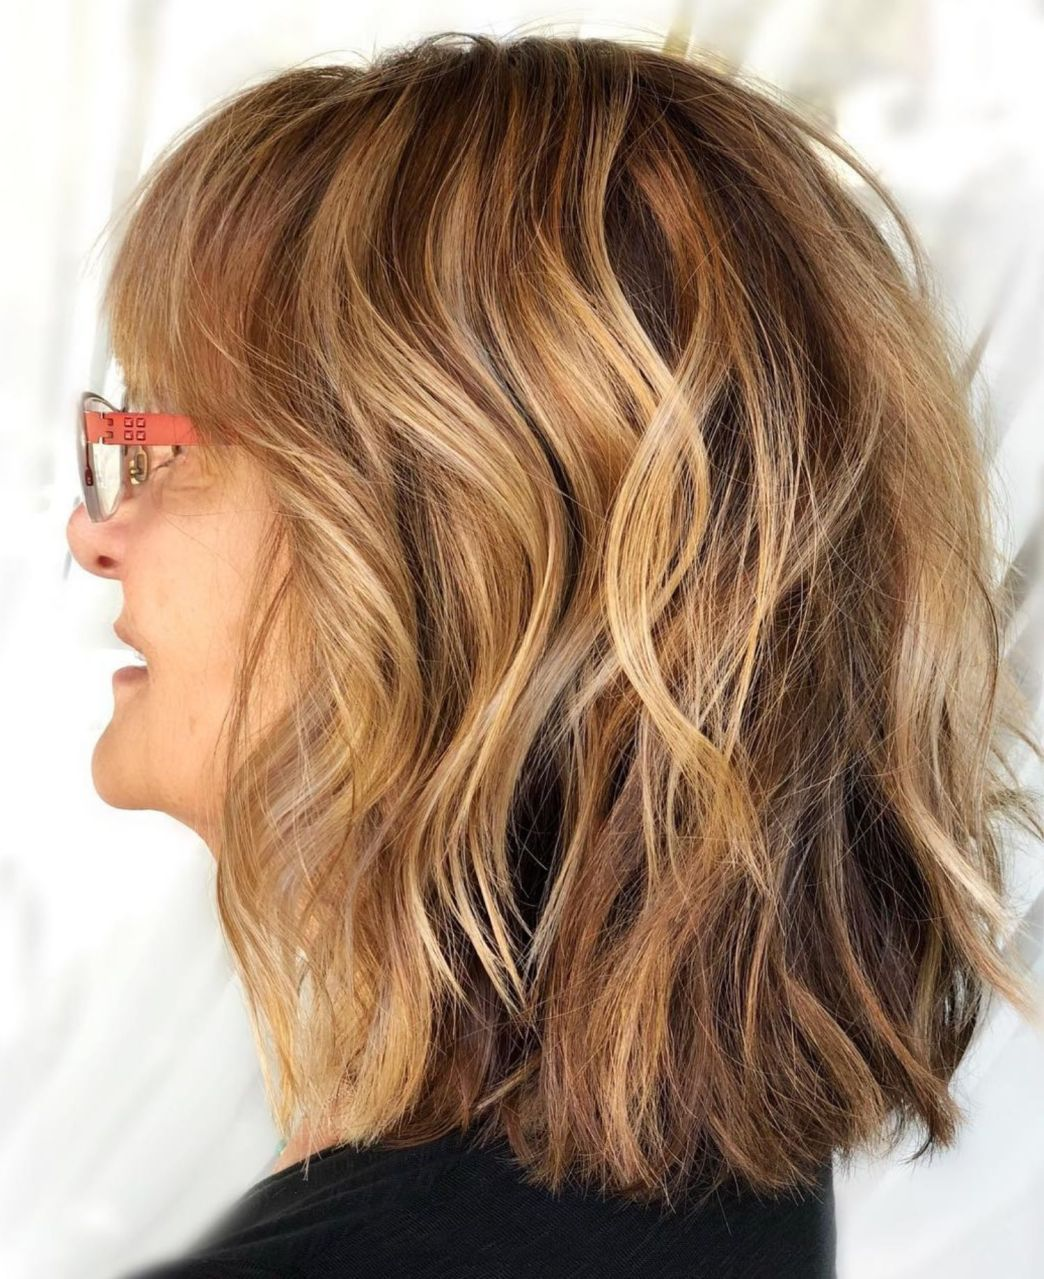 Medium Wavy Hairstyle For Thick Hair Over 50 Wavy Hairstyles Medium Thick Hair Styles Modern Hairstyles